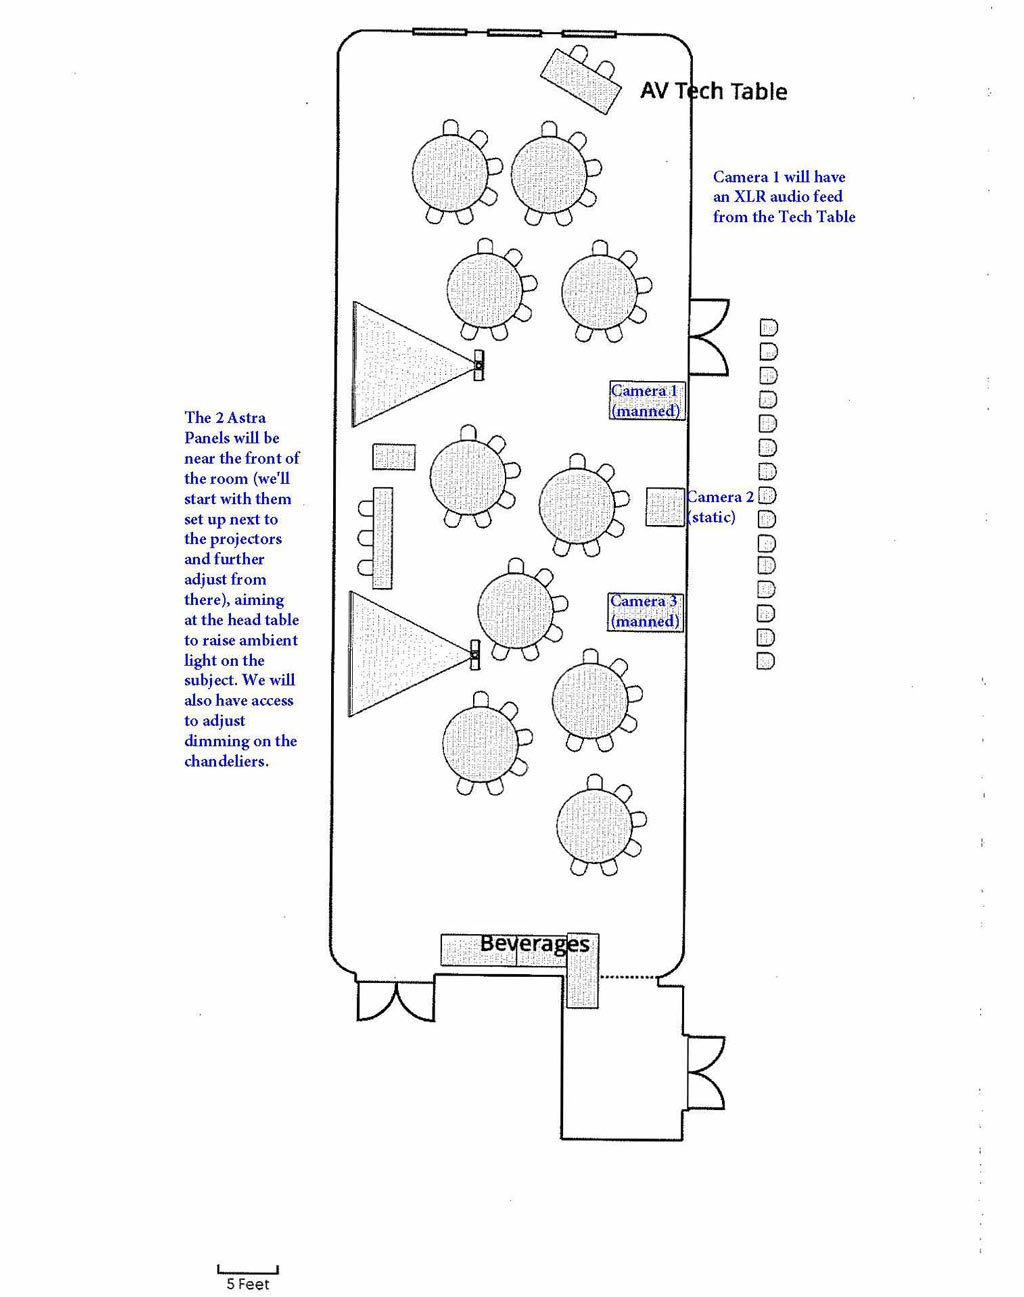 diagram of an event with cameras and tables set up